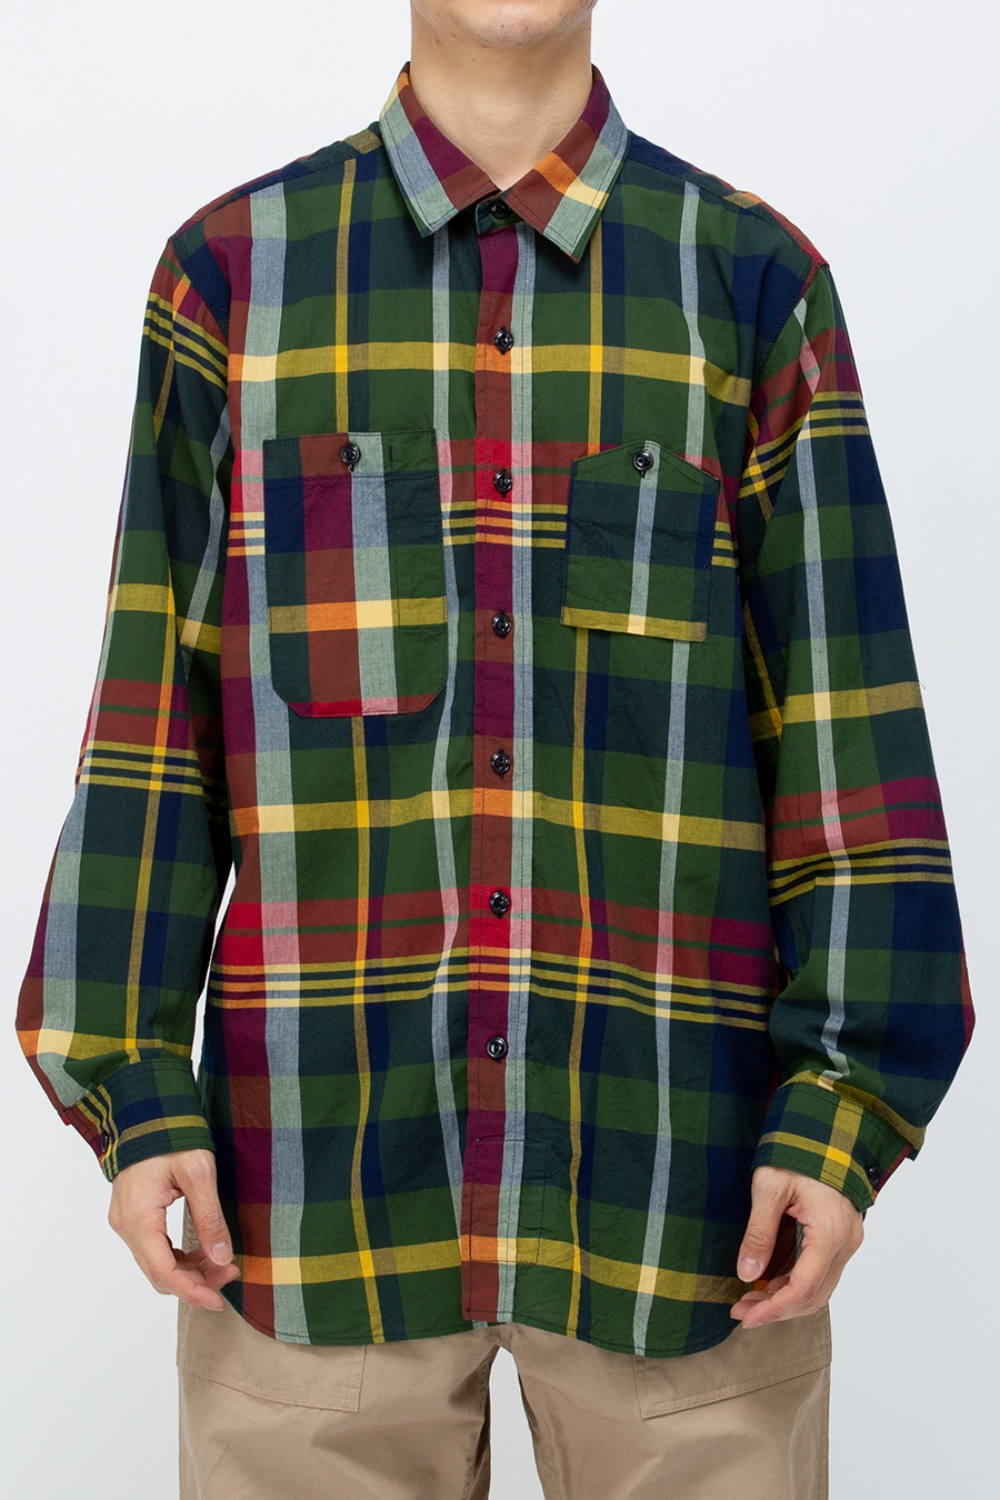 WORK SHIRT COTTON BIG MADRAS PLAID GREEN/NAVY